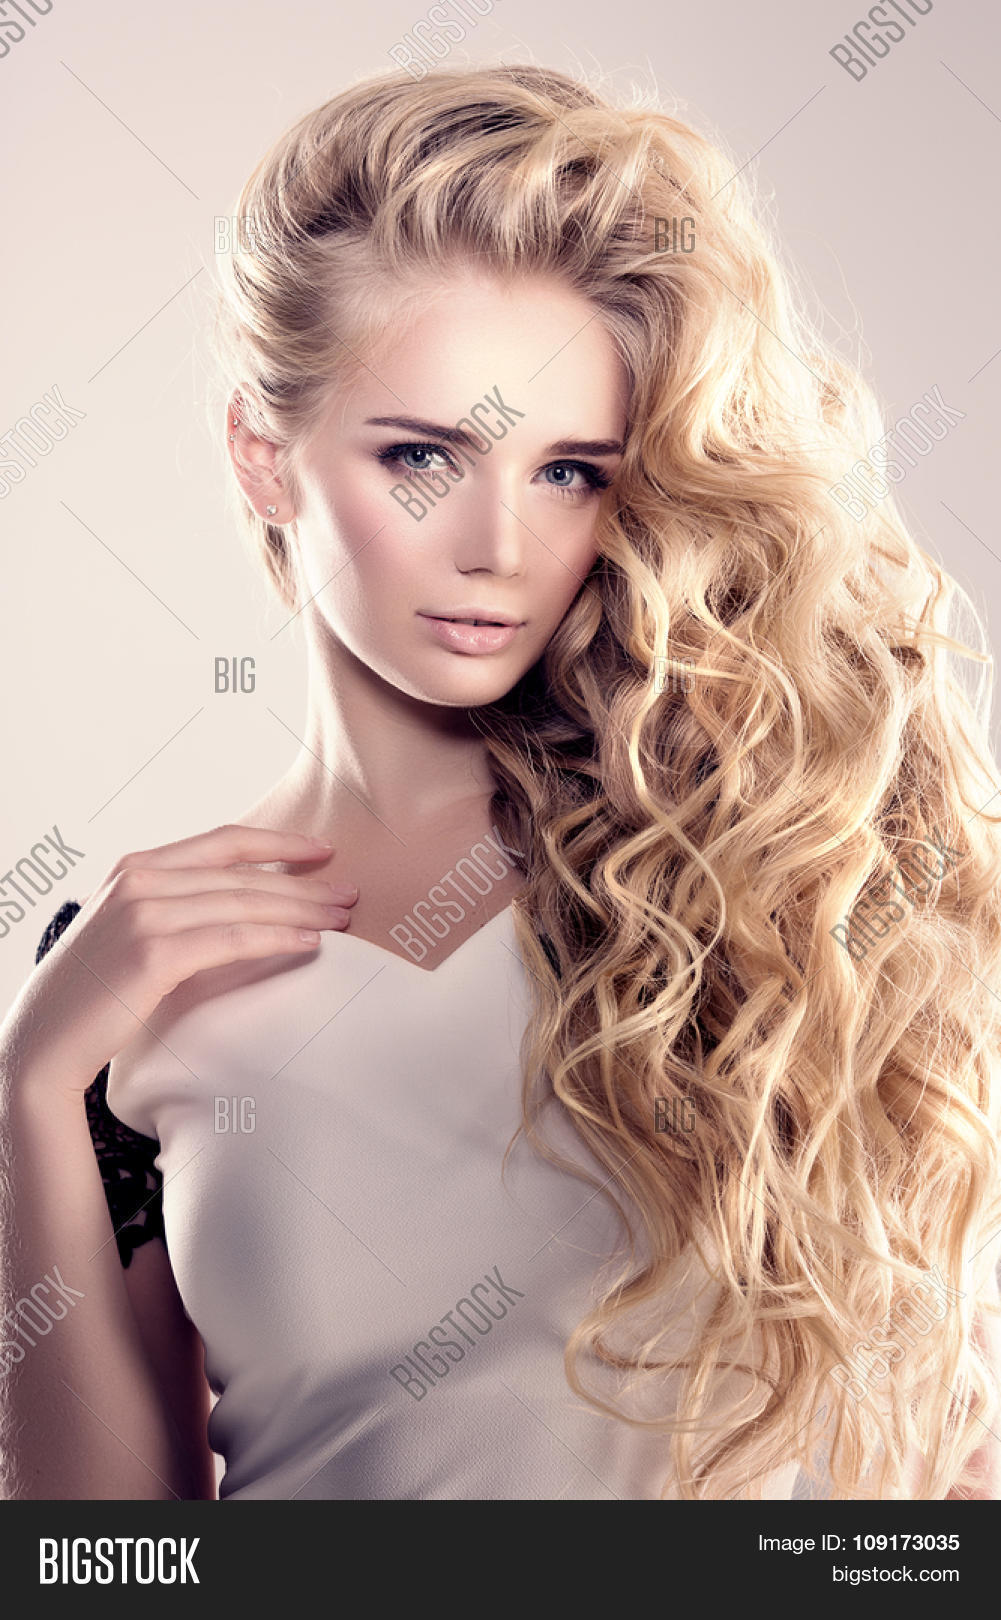 Model Long Hair Blonde Waves Curls Image Amp Photo Bigstock